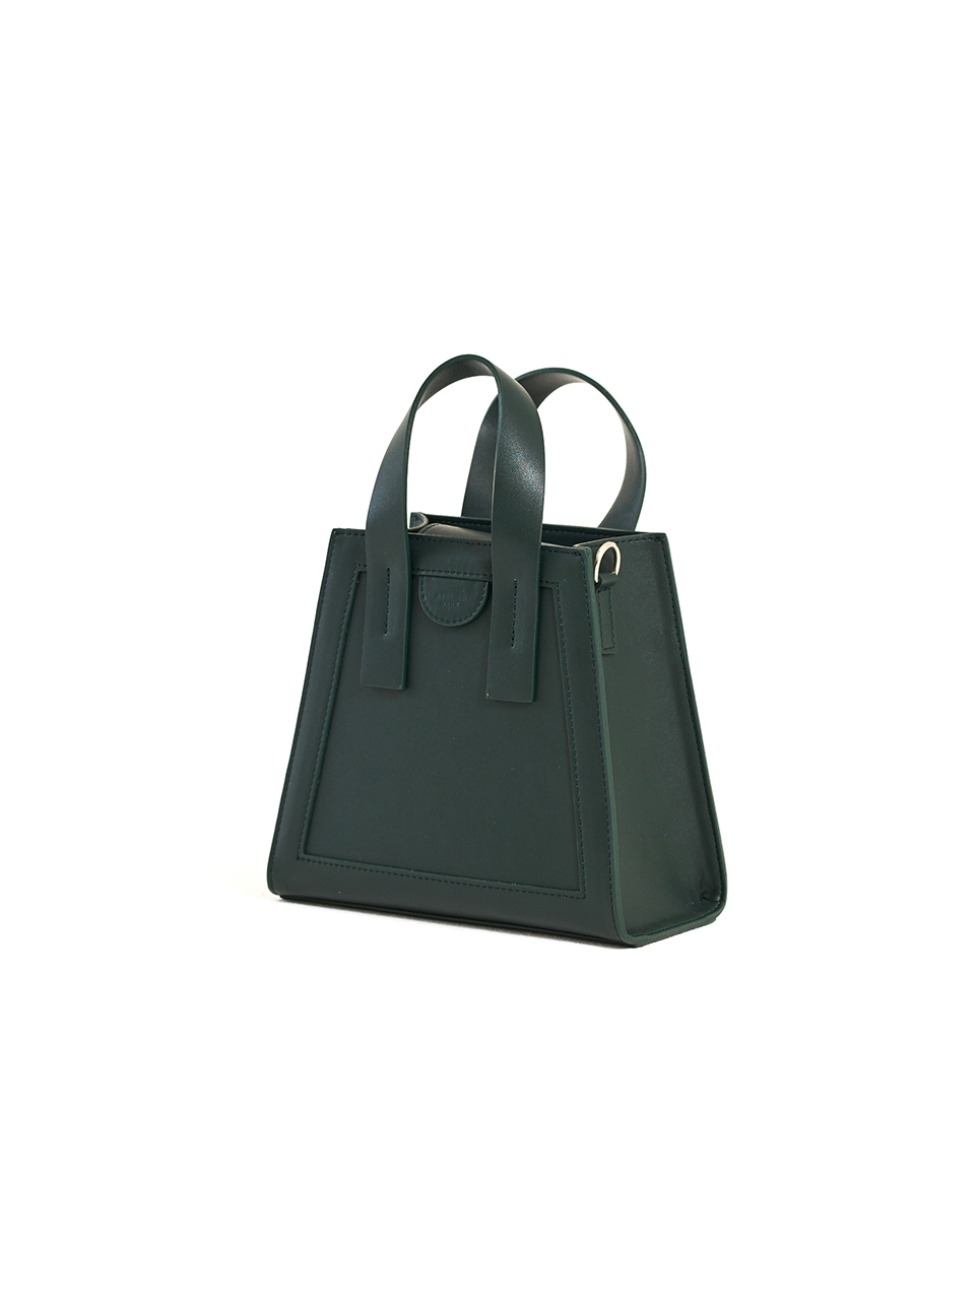 GEO BAG_MINI_DEEP GREEN